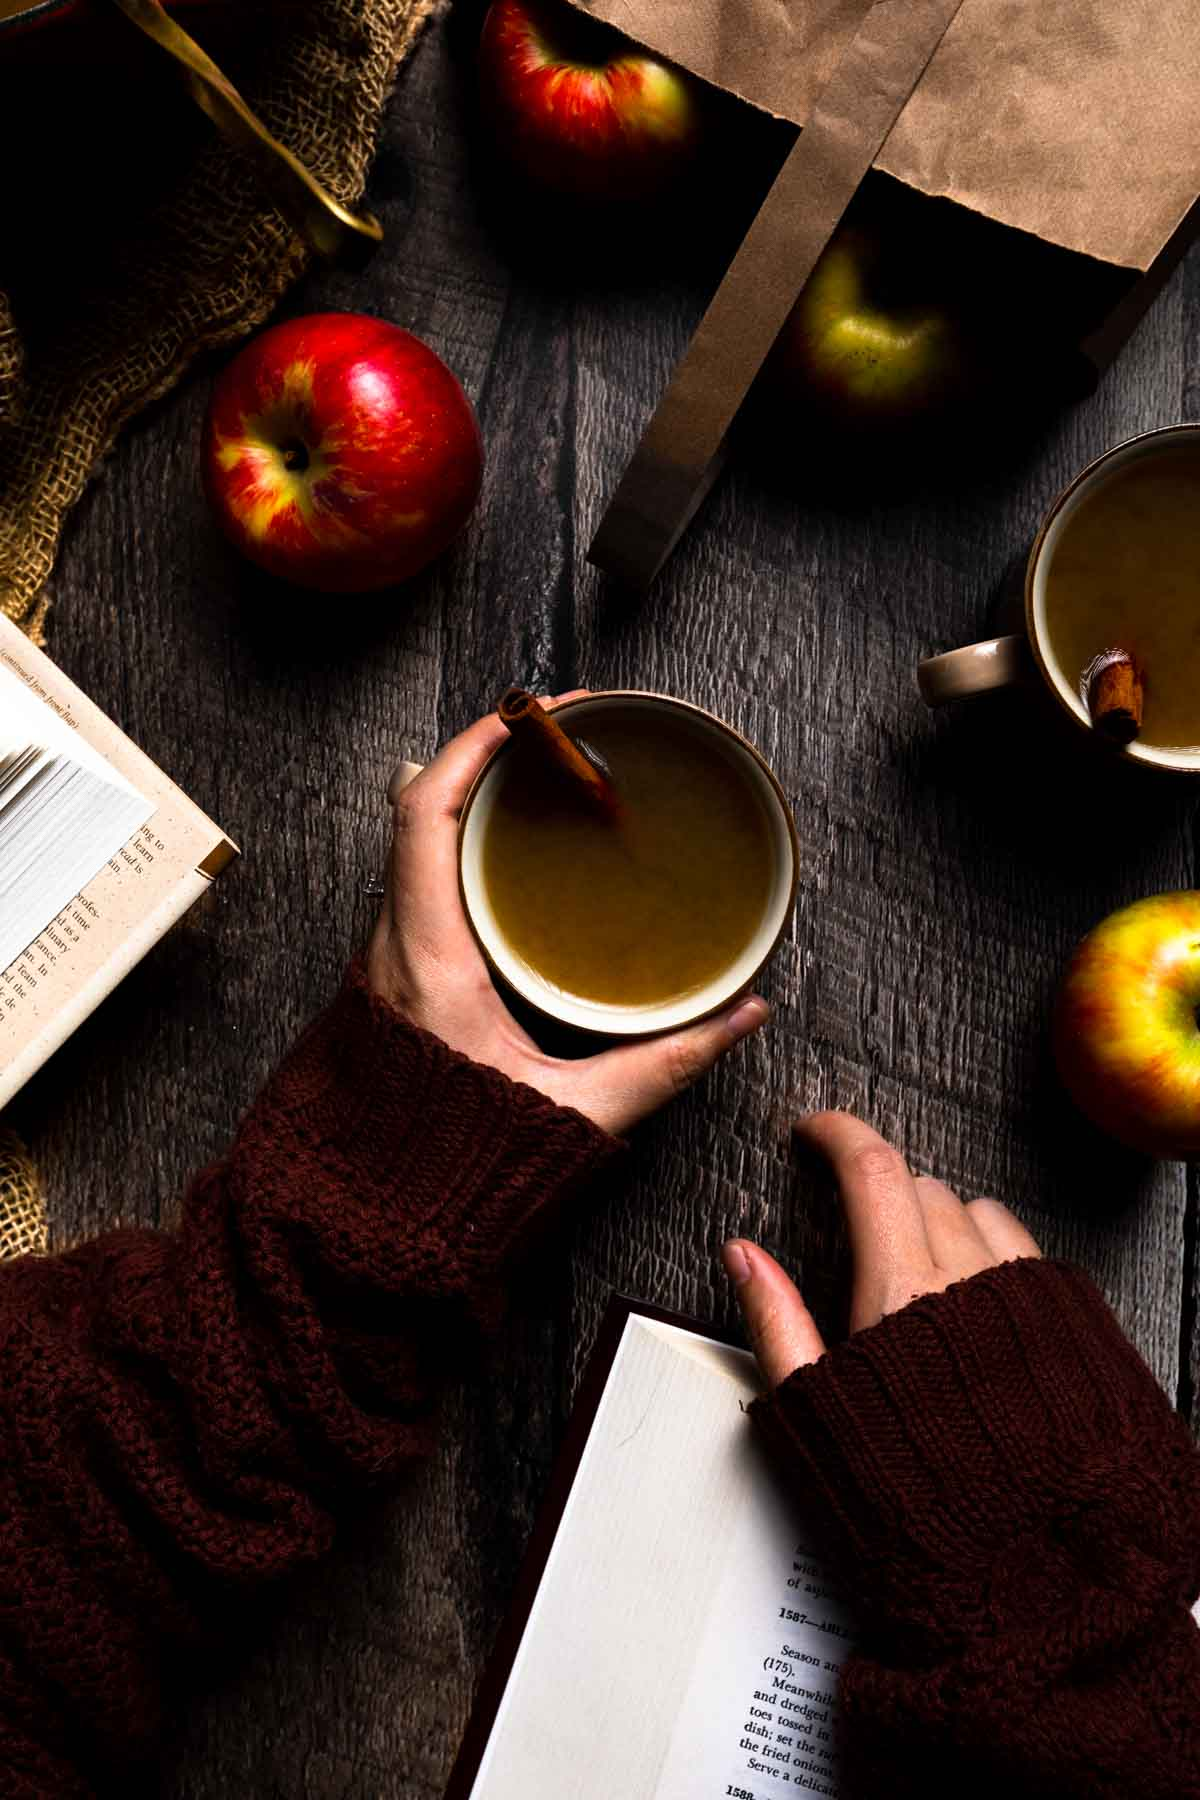 A hand holding a mug of hot apple cider near open books and a bag of apples